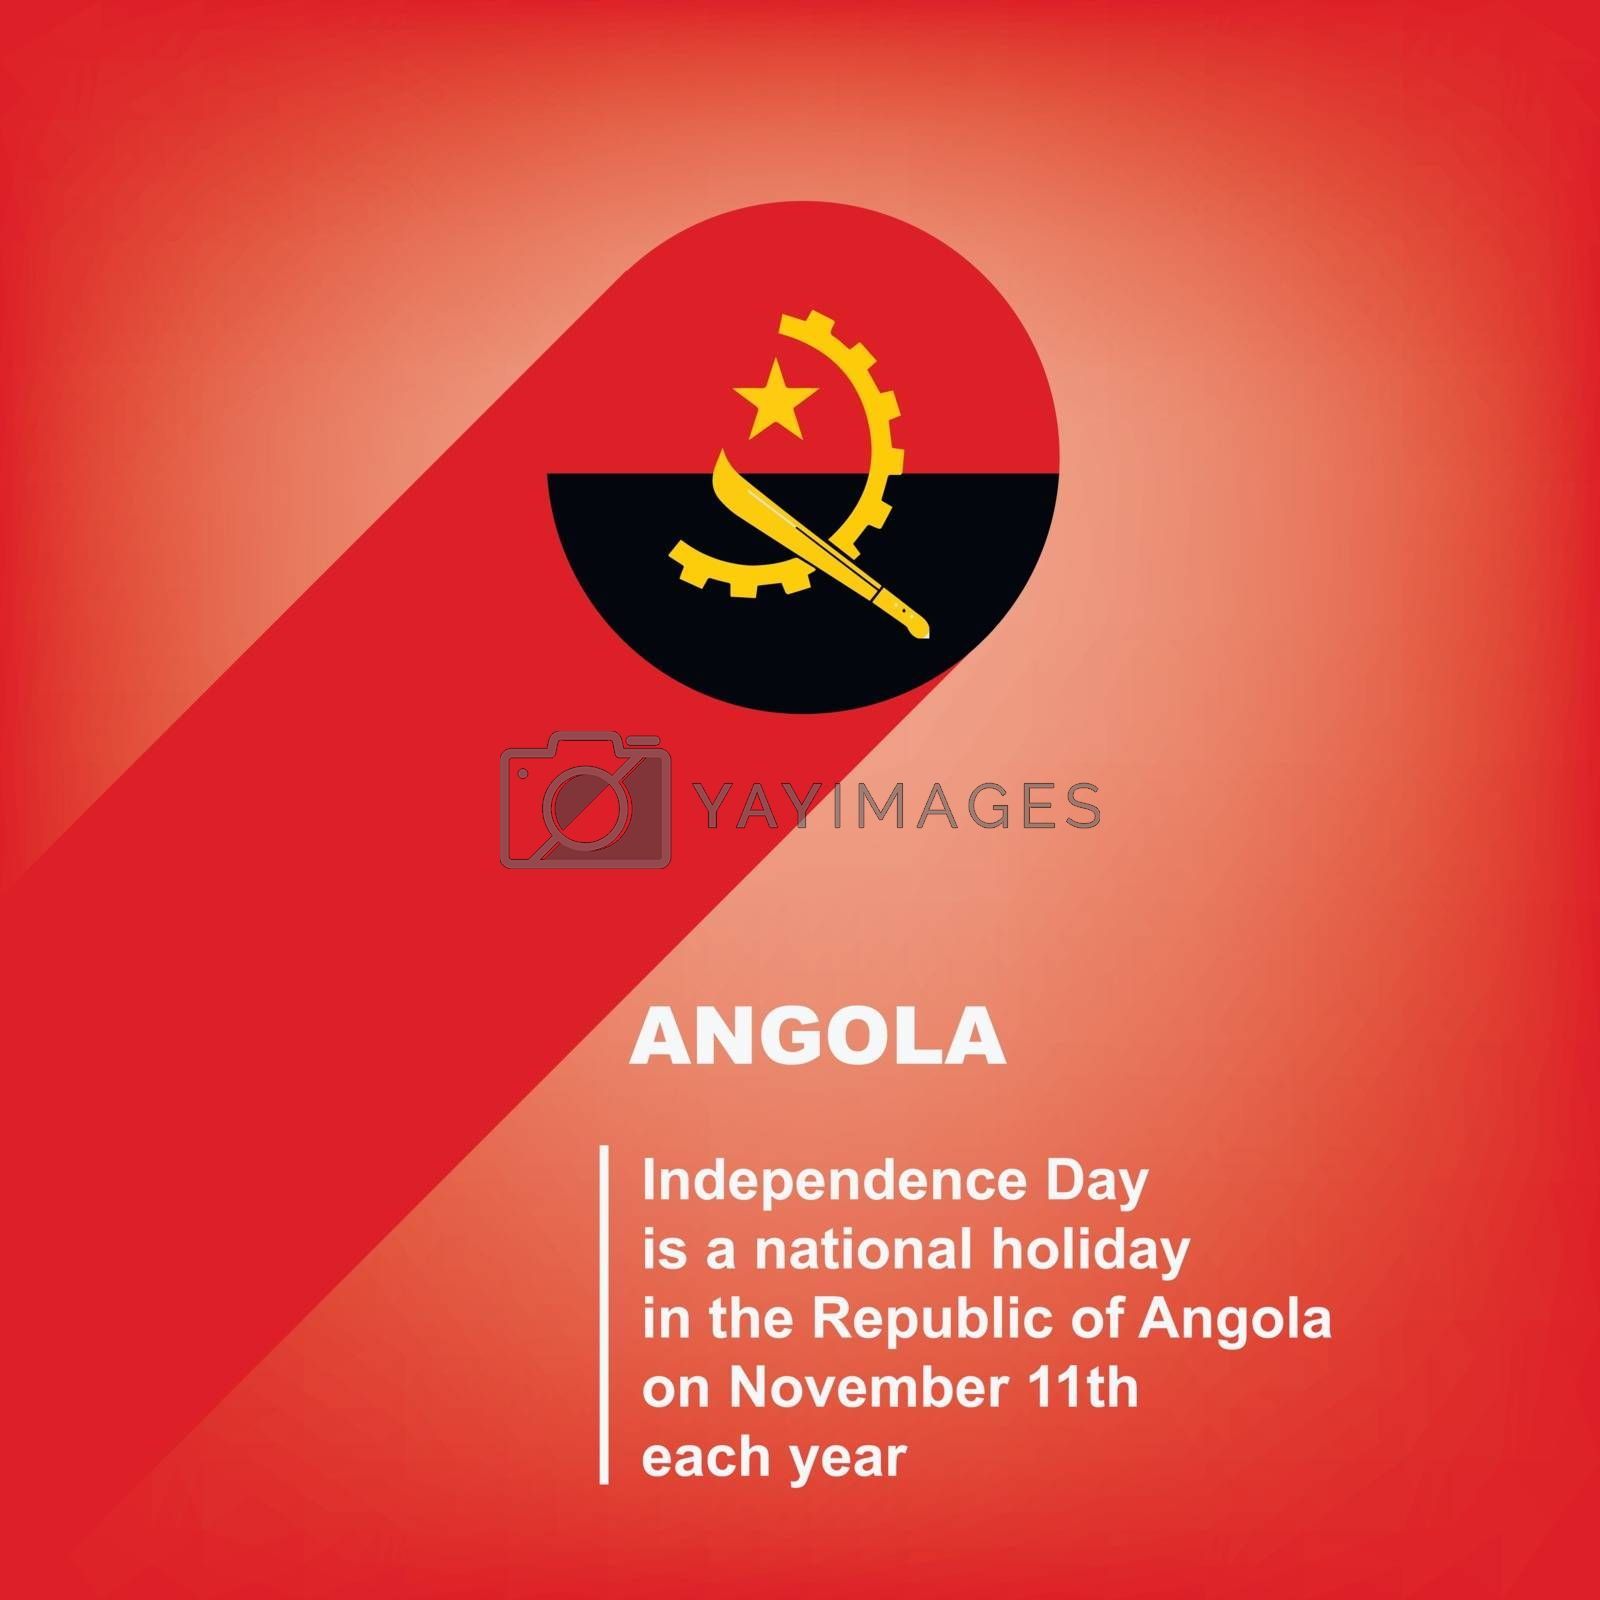 National Holiday in Angola - Independence Day. Poster for event